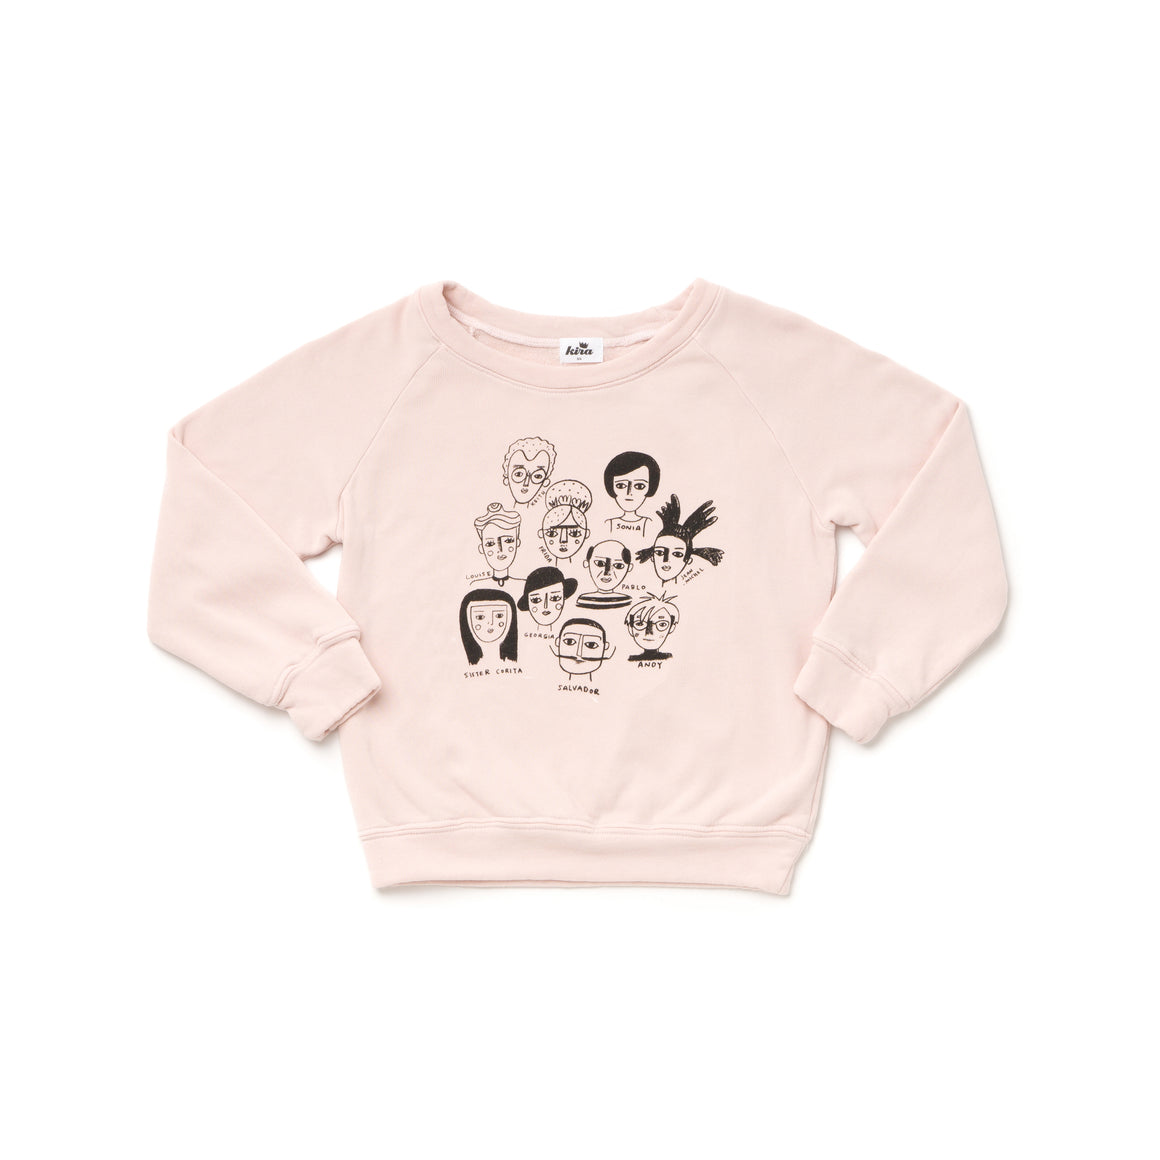 Artists in History Graphic Raglan Sweatshirt, Powder Pink